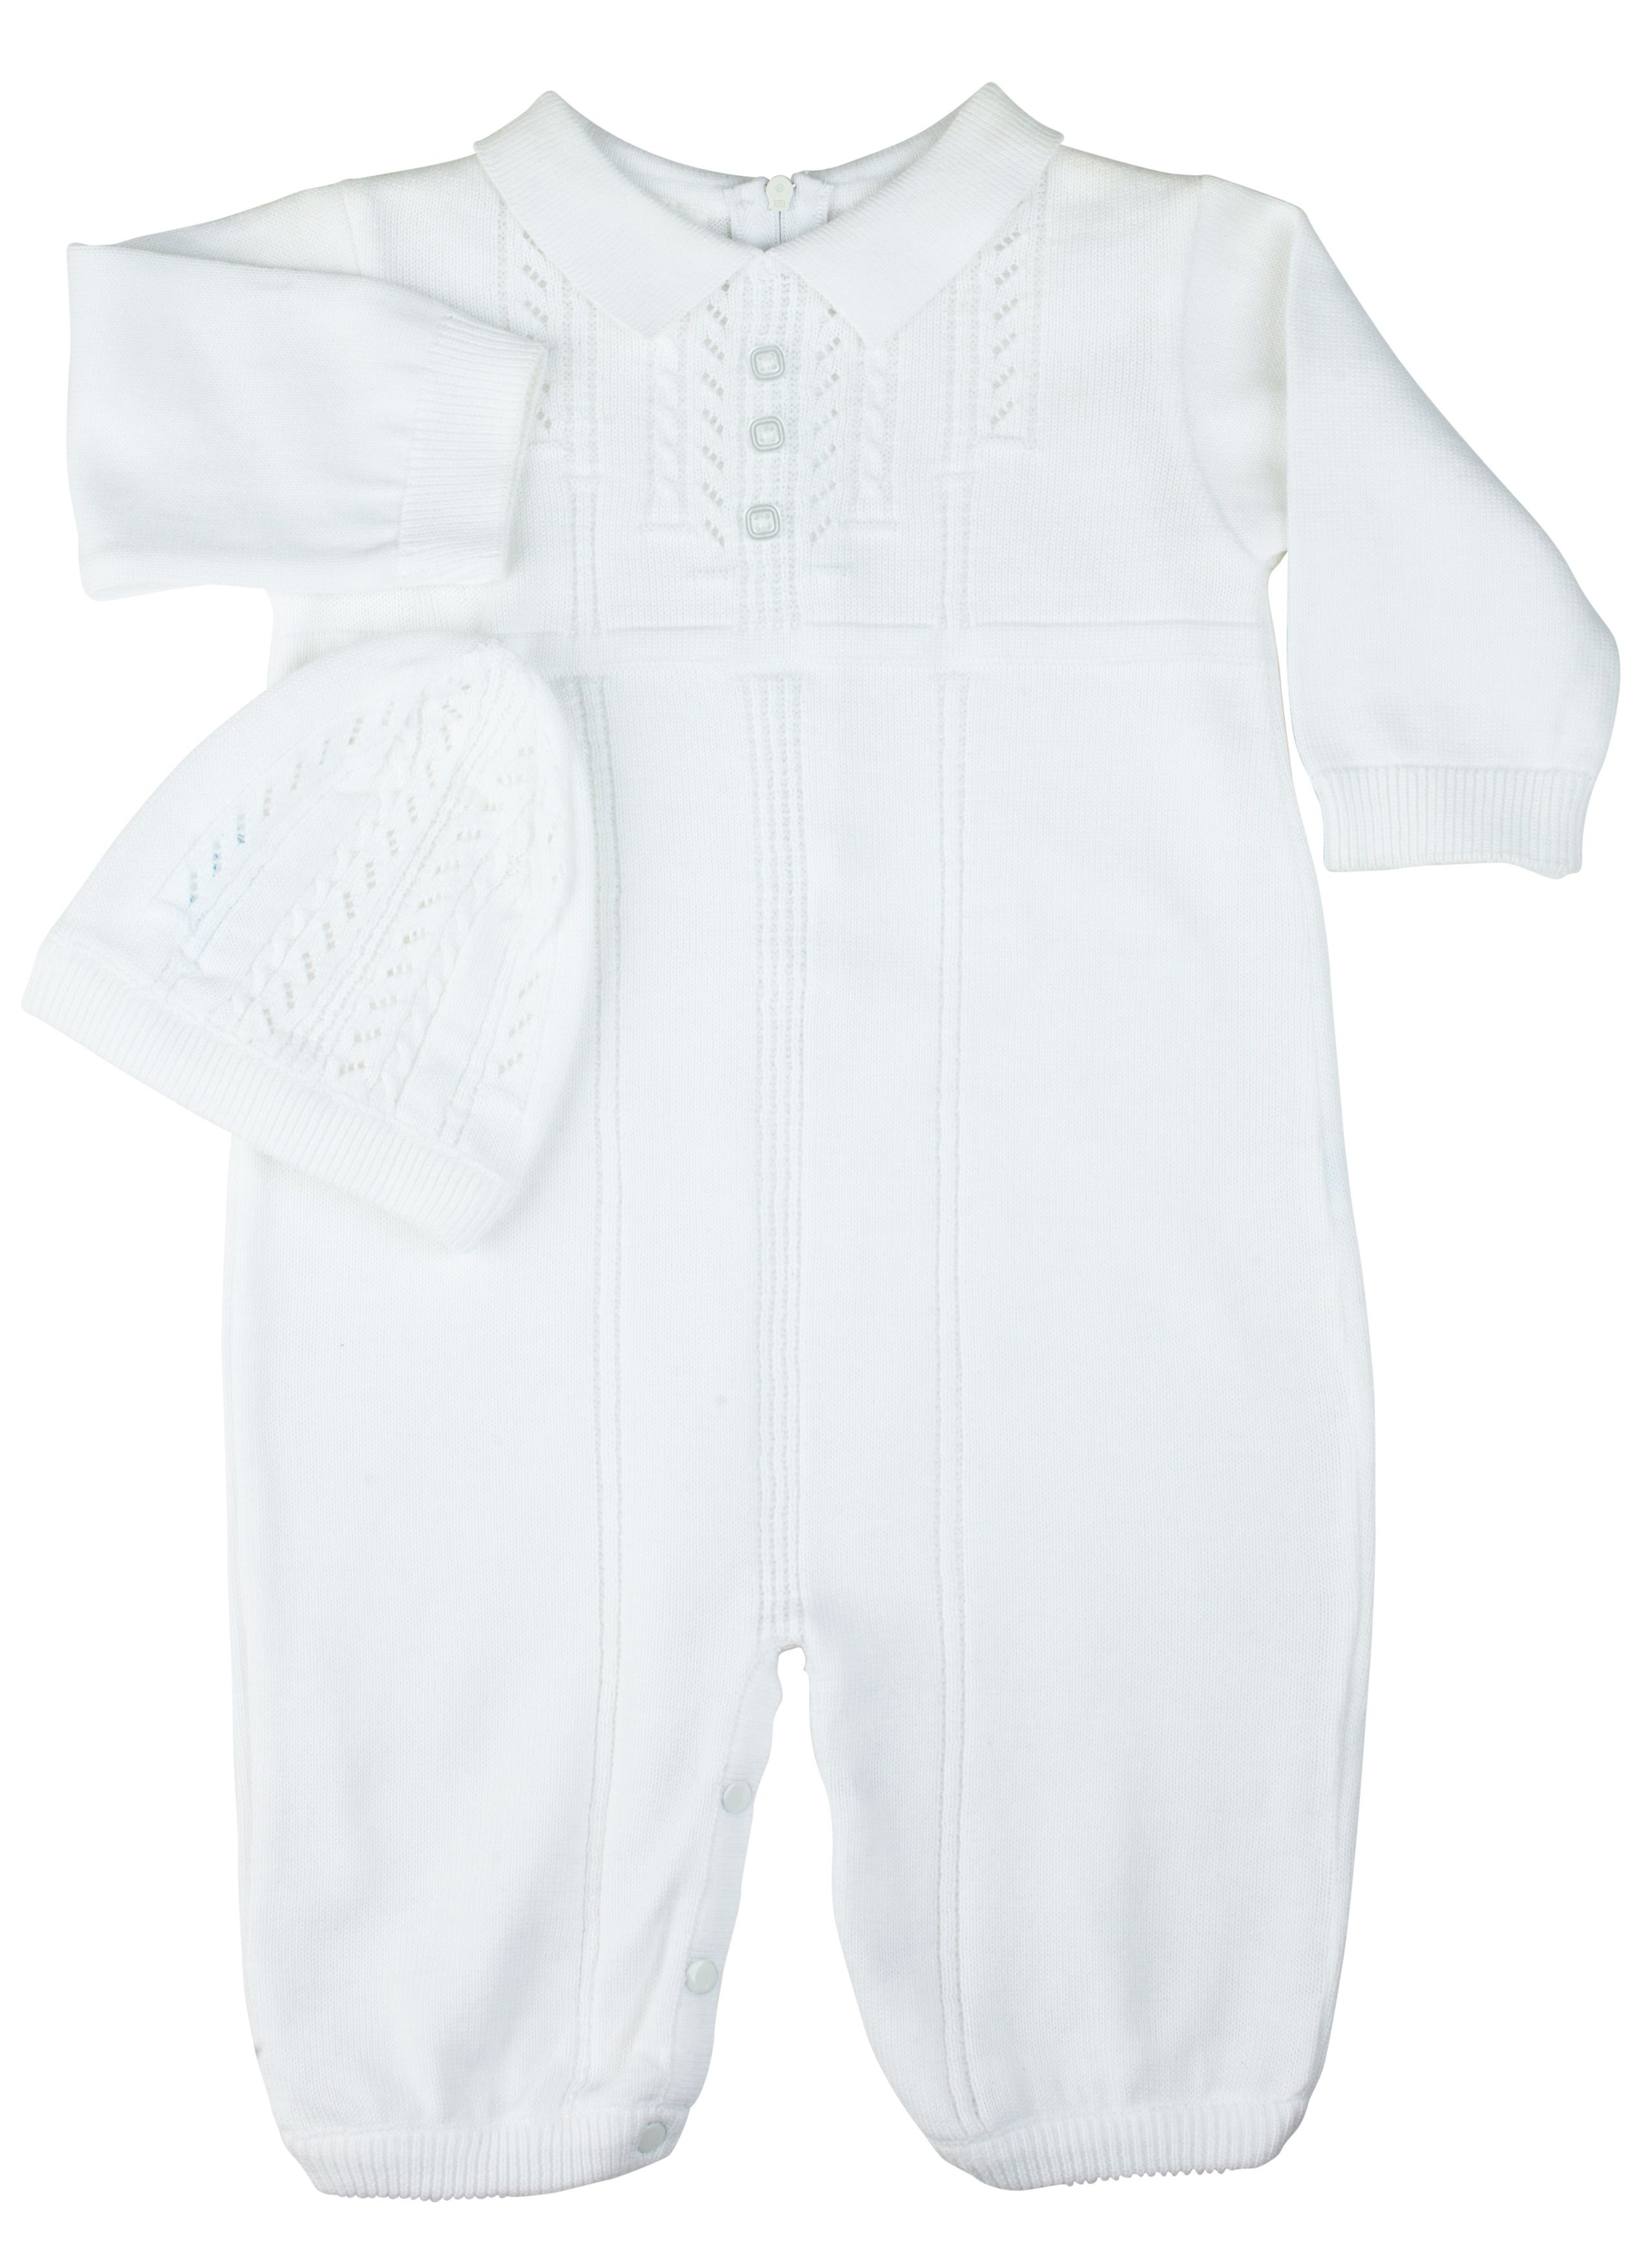 6f9c2e355 Feltman Brothers baby boy 2-piece white knit romper with matching hat. Cozy  and…